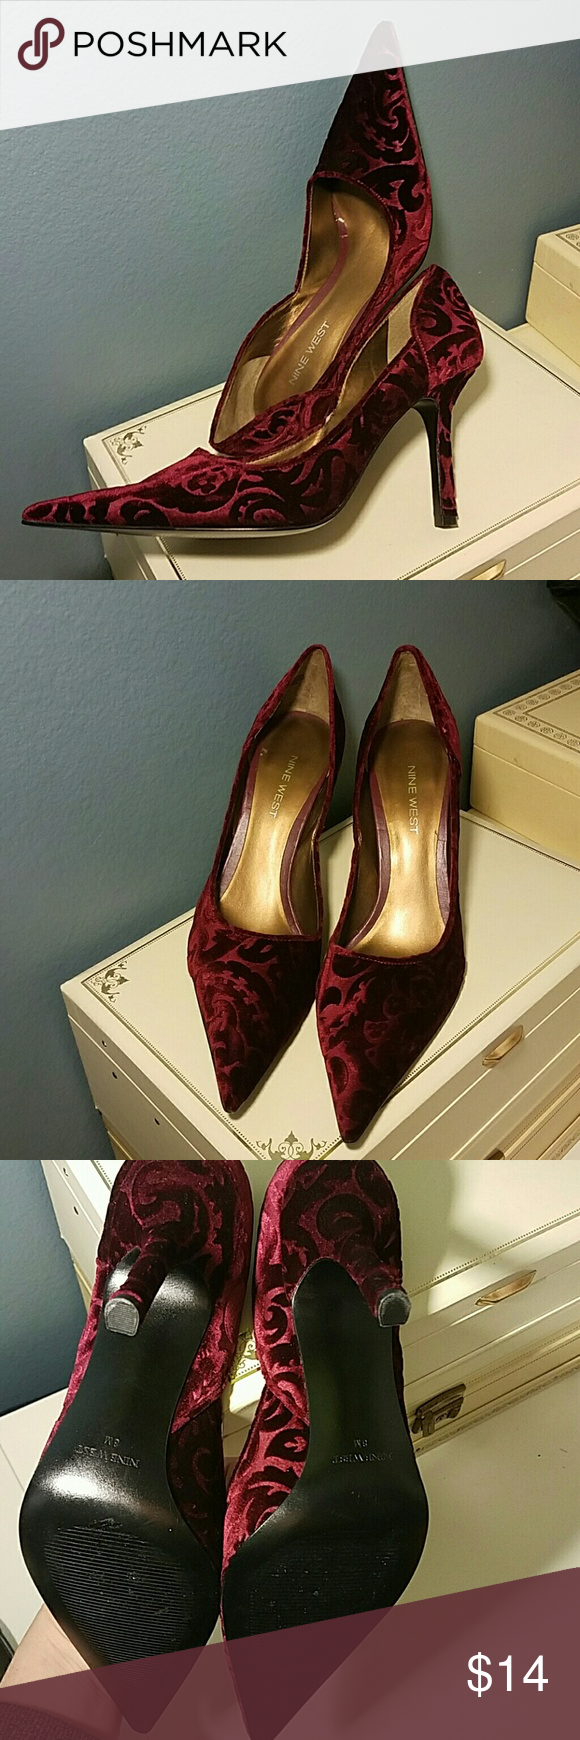 Nine West velvet heels size 8 Beautiful deep red..floral tone on tone pattern..EXTRA pointy toe...very, very little wear on bottom..I don't think these have been worn outside..size 8..fantastic shoes for the holidays! Nine West Shoes Heels